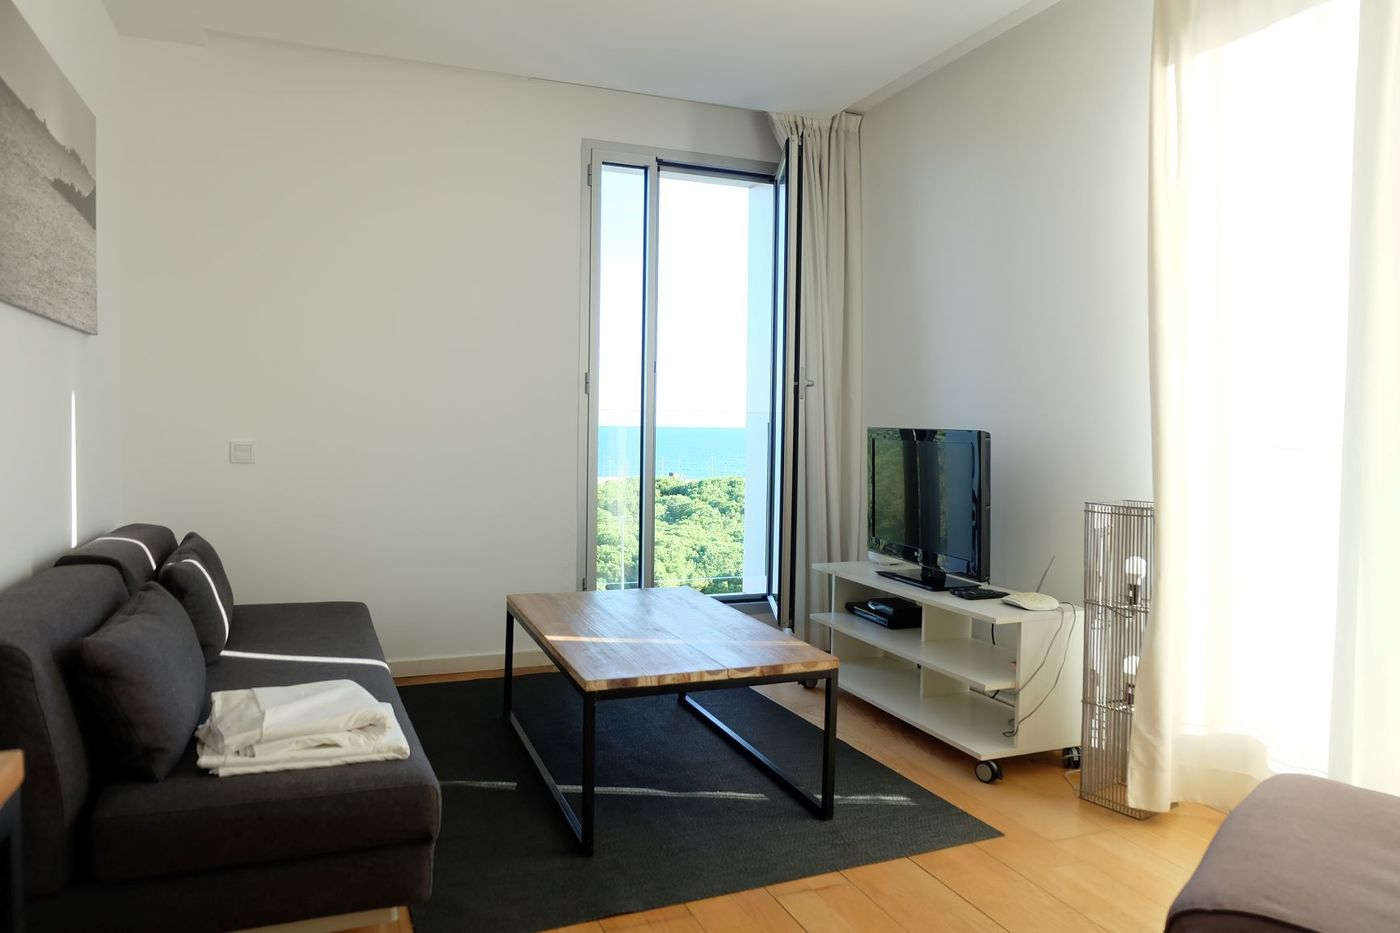 Rent Apartment in Passeig de calvell. Alquilo piso en barcelona poblenou frente al mar